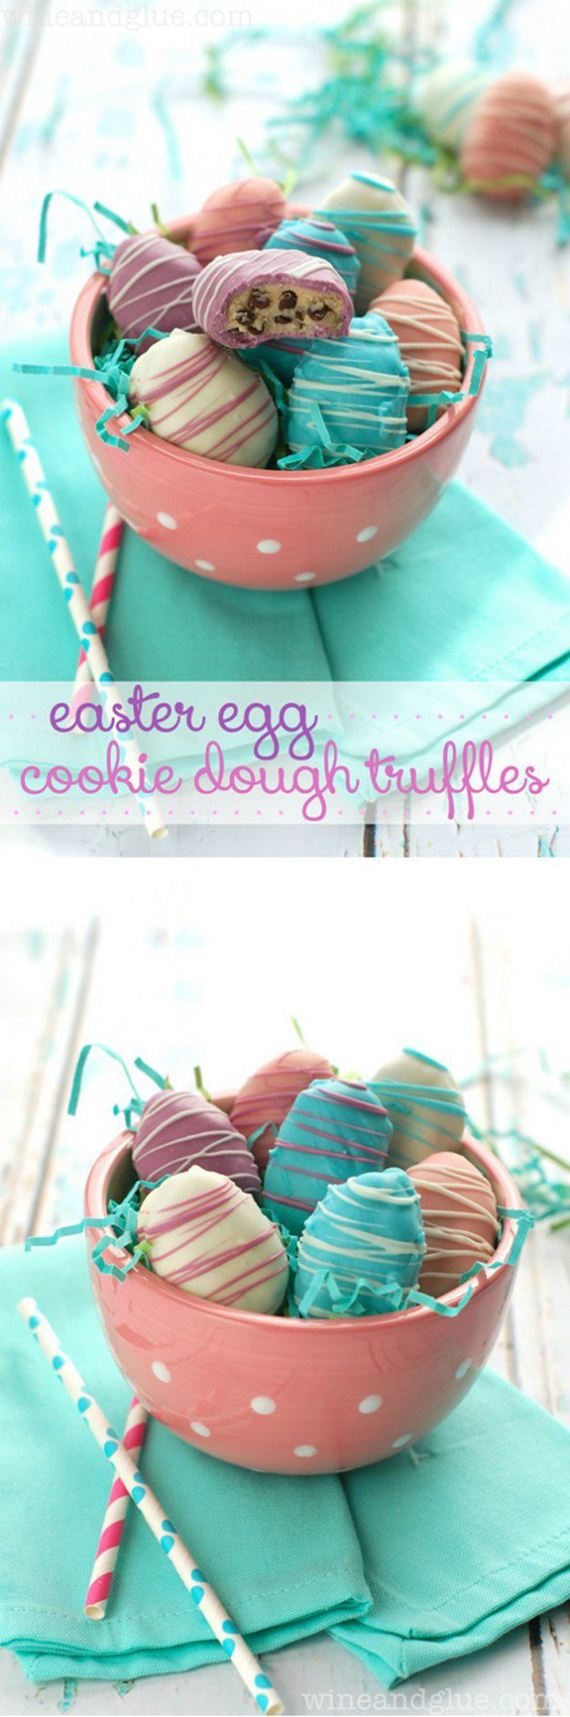 10-Easy-Tasty-Easter